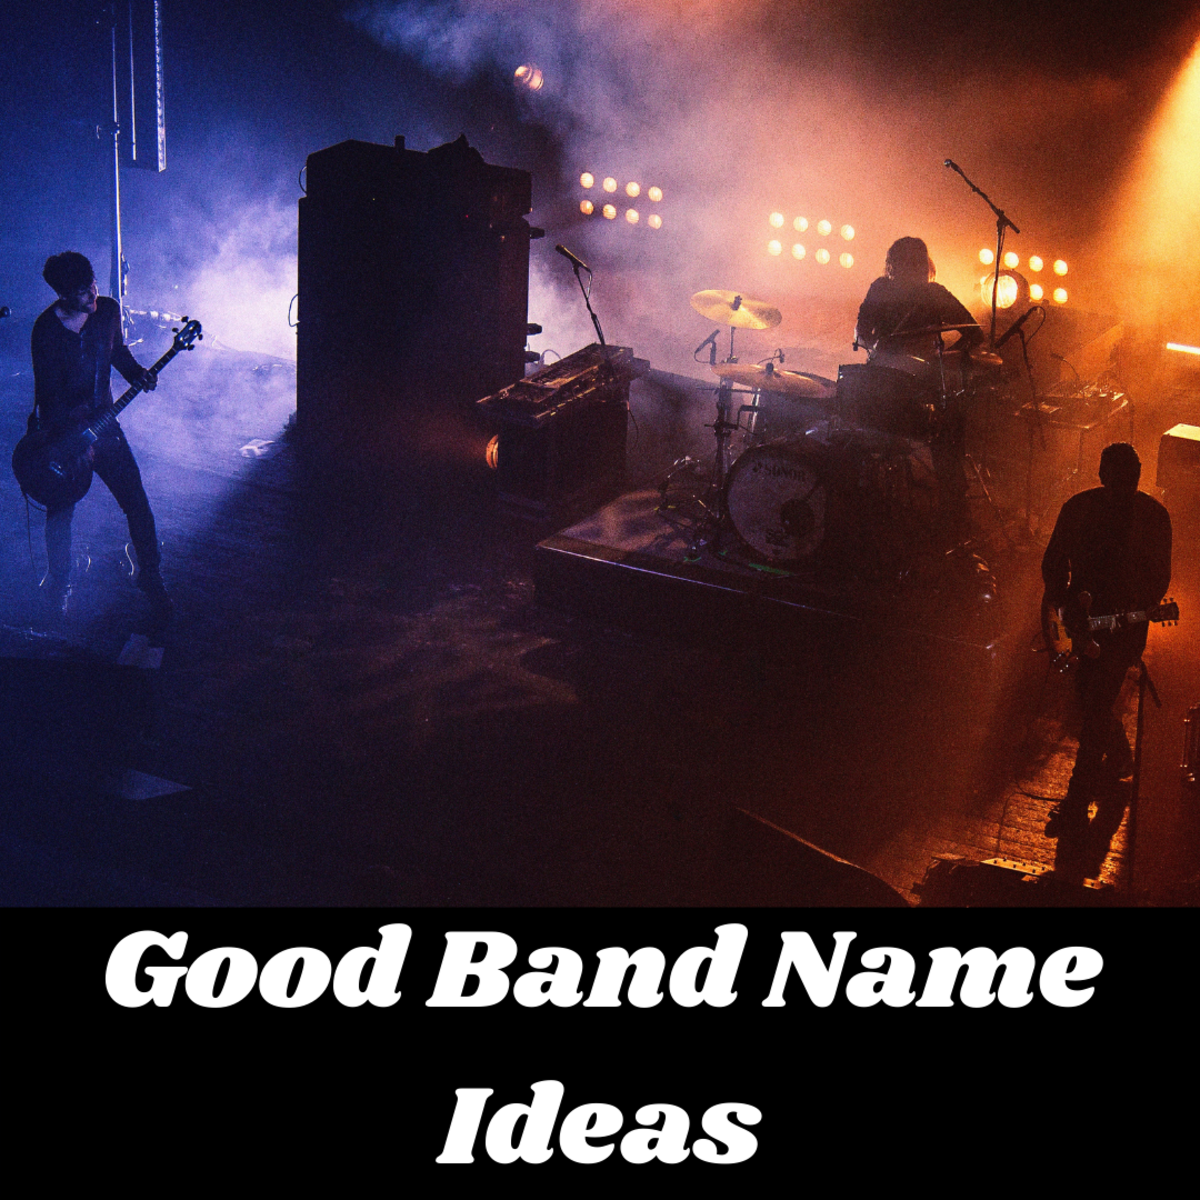 Good Band Name Ideas: A Band Ain't a Band Unless You Have One